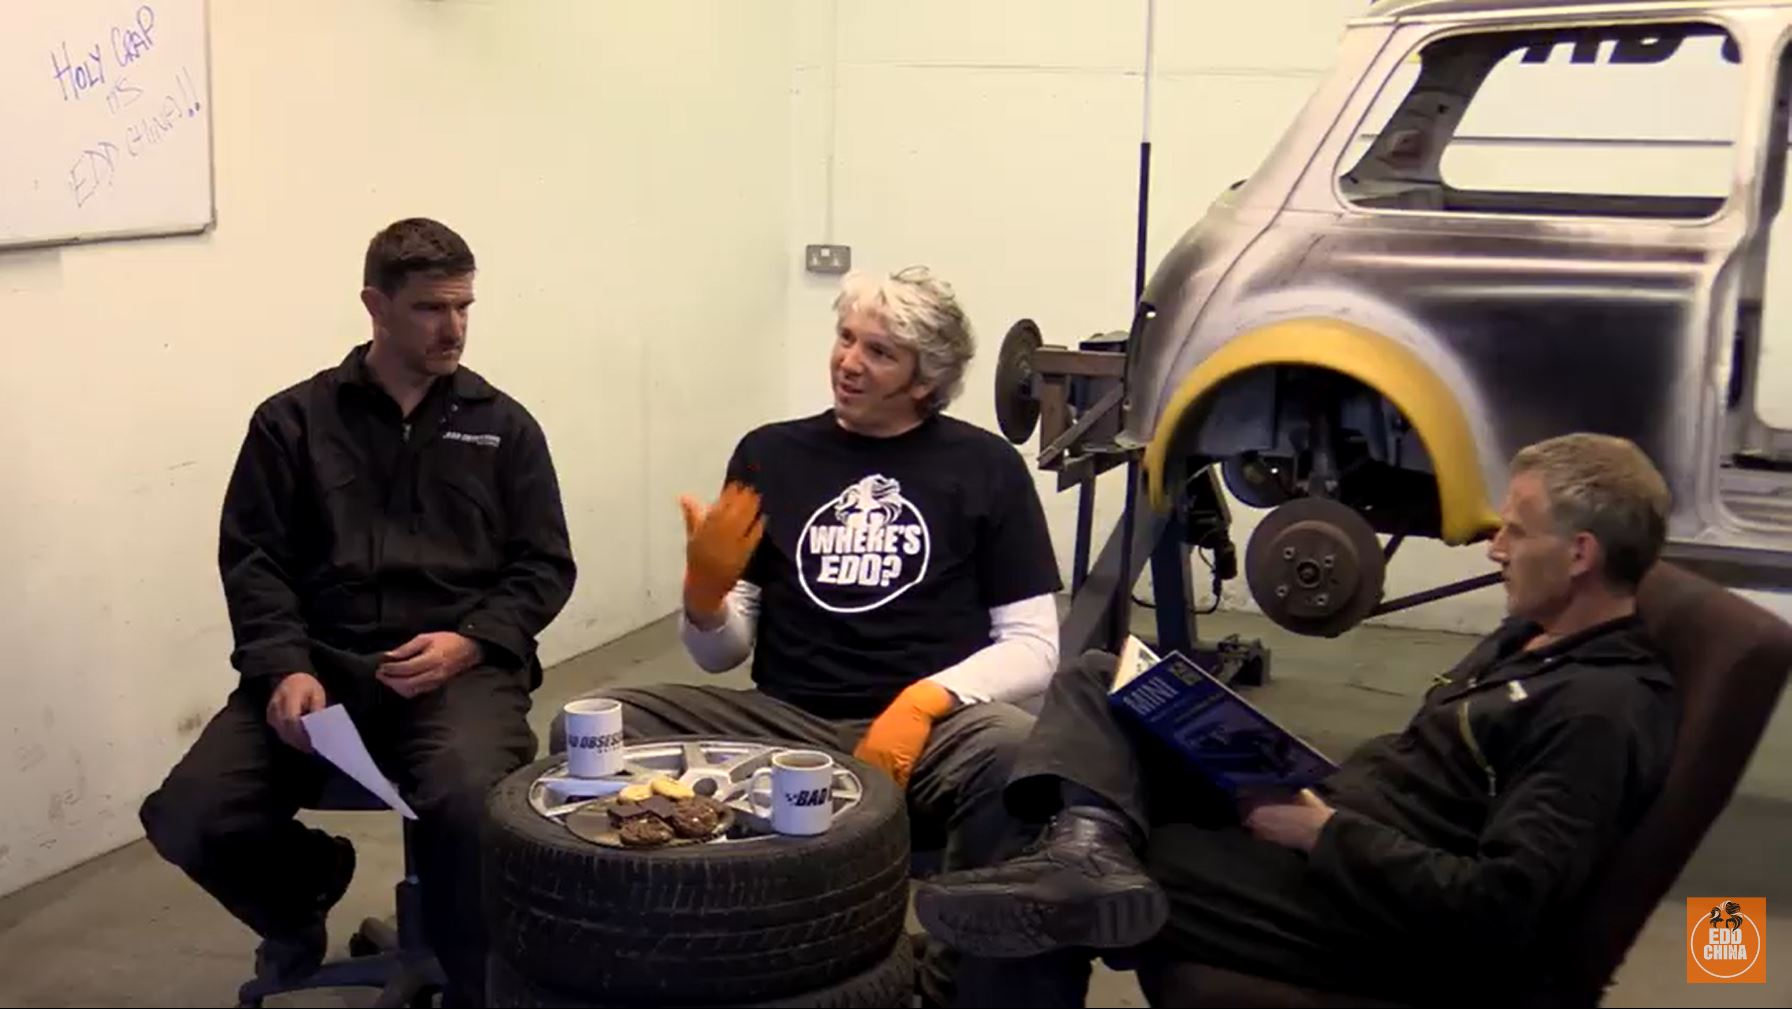 Edd China And The Project Binky Crew At Bad Obsession Hang Out On Video!